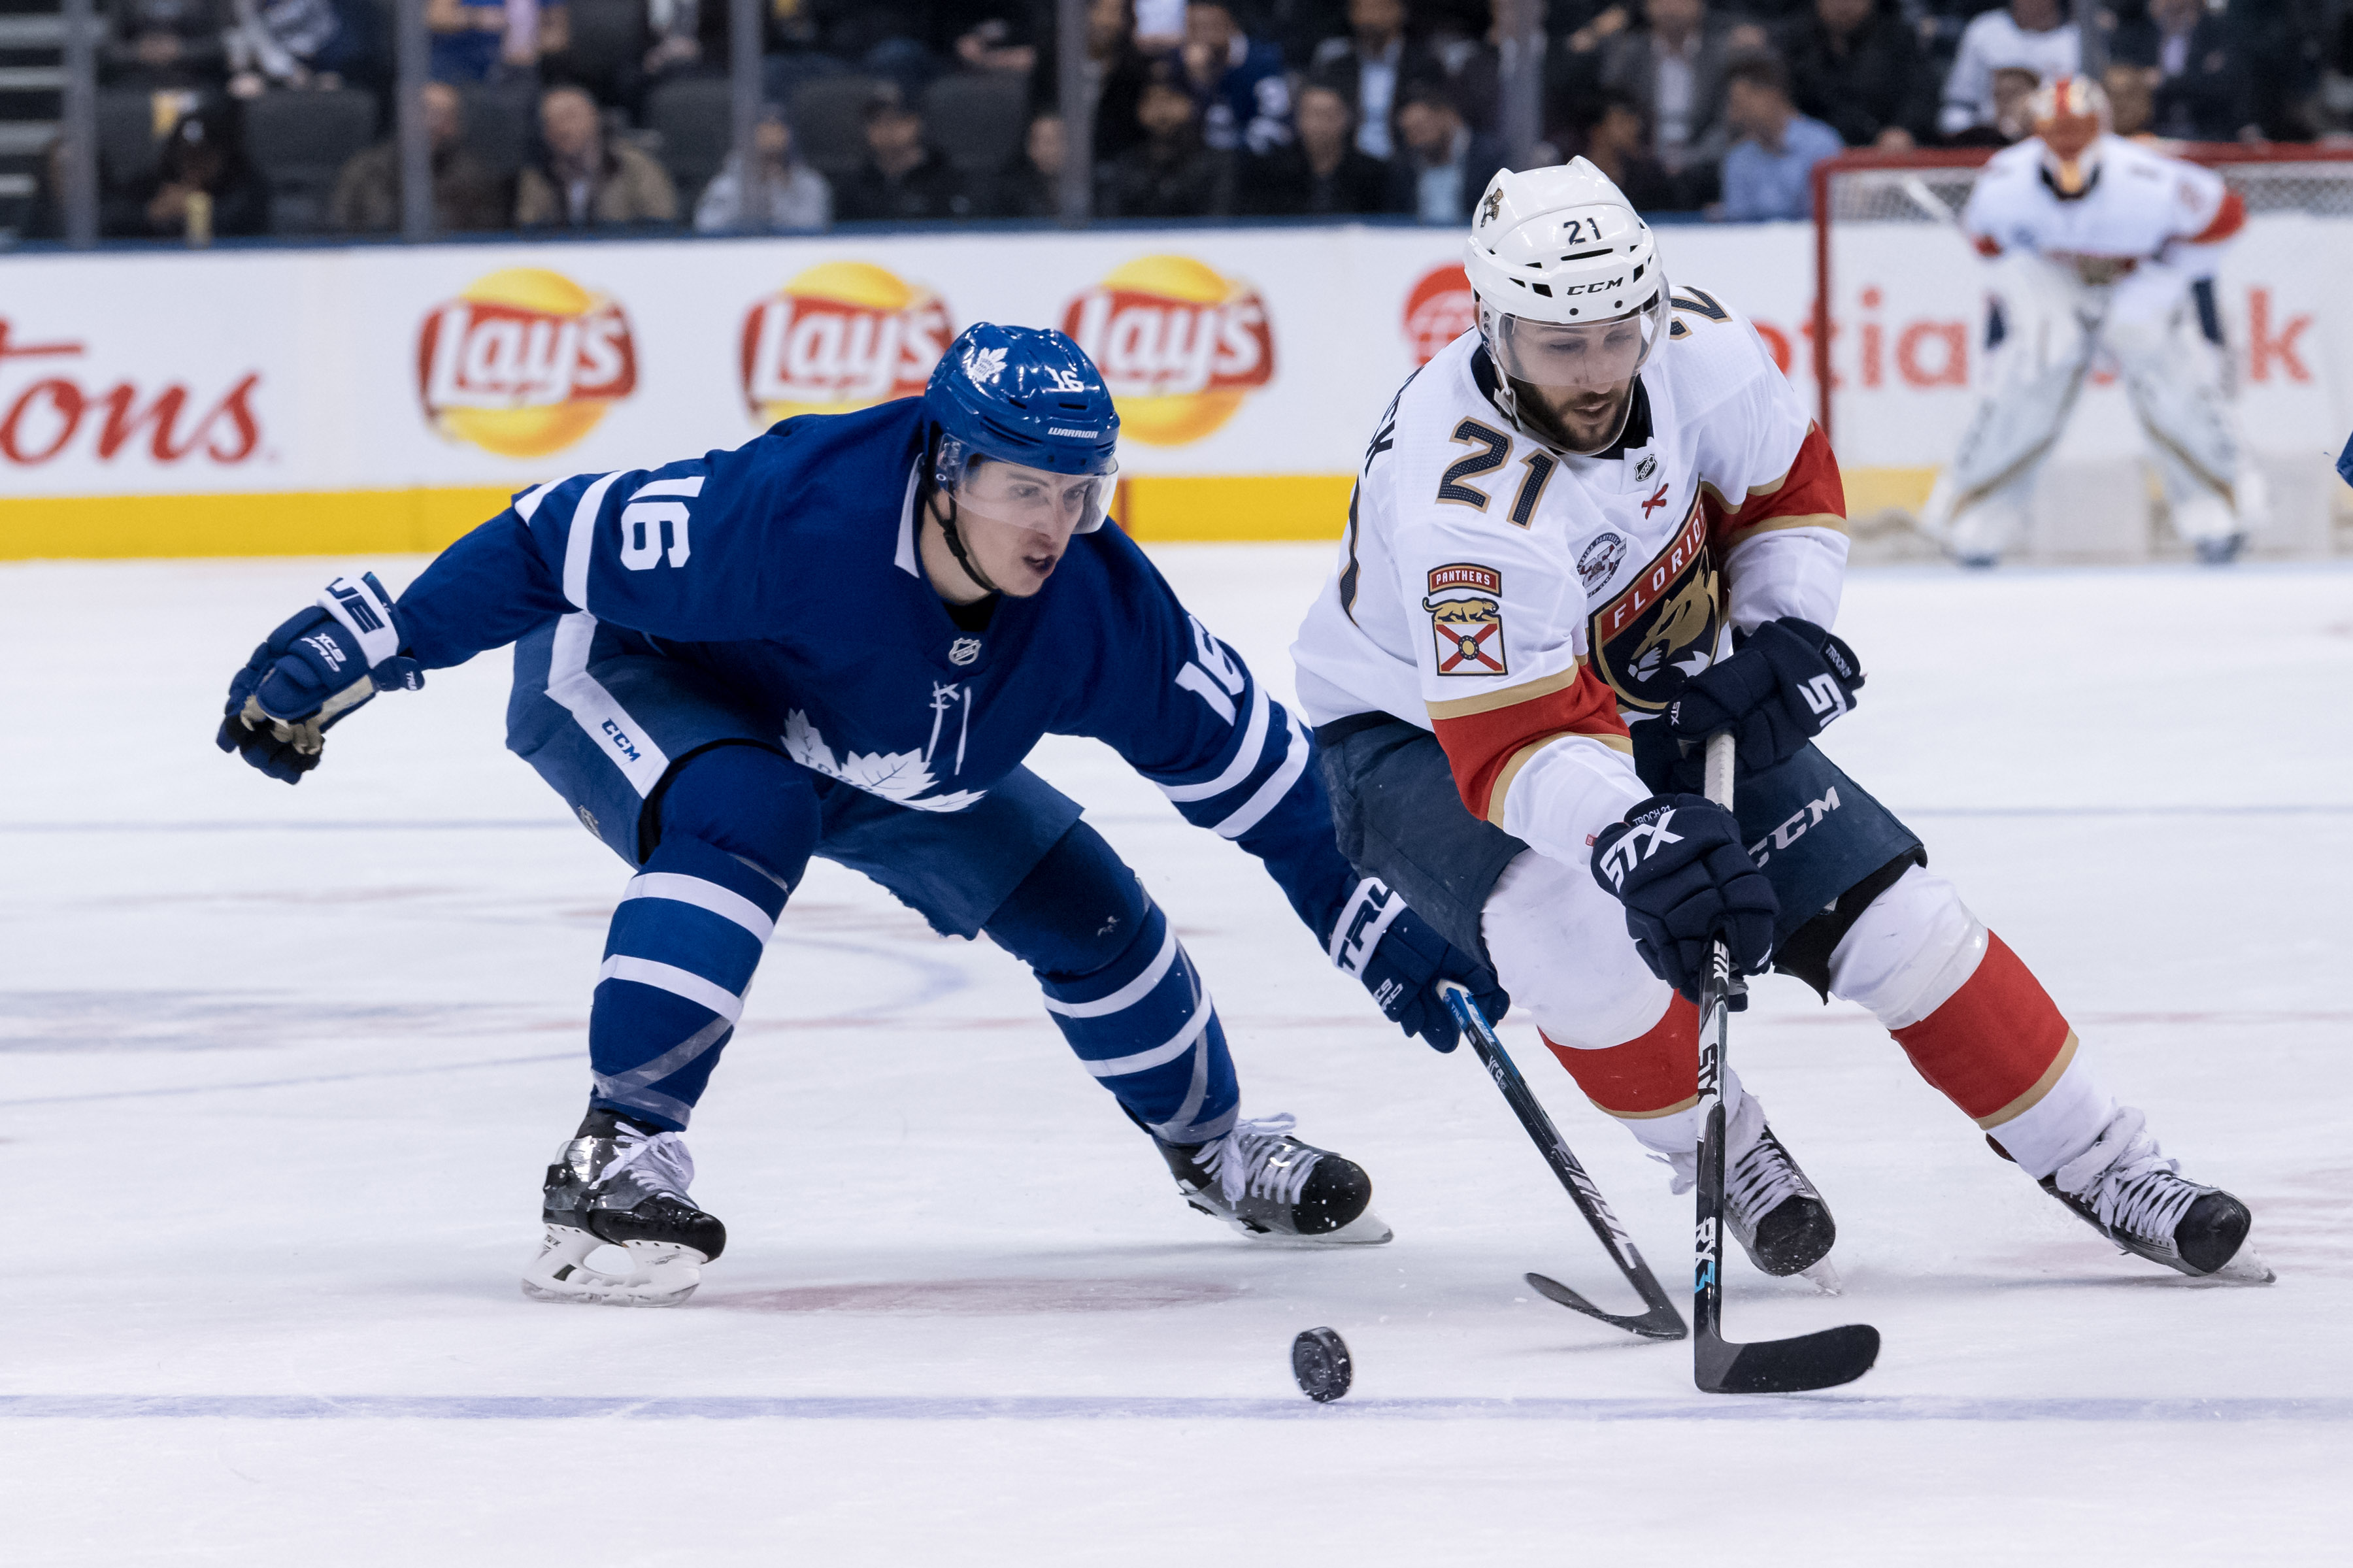 NHL: MAR 25 Panthers at Maple Leafs